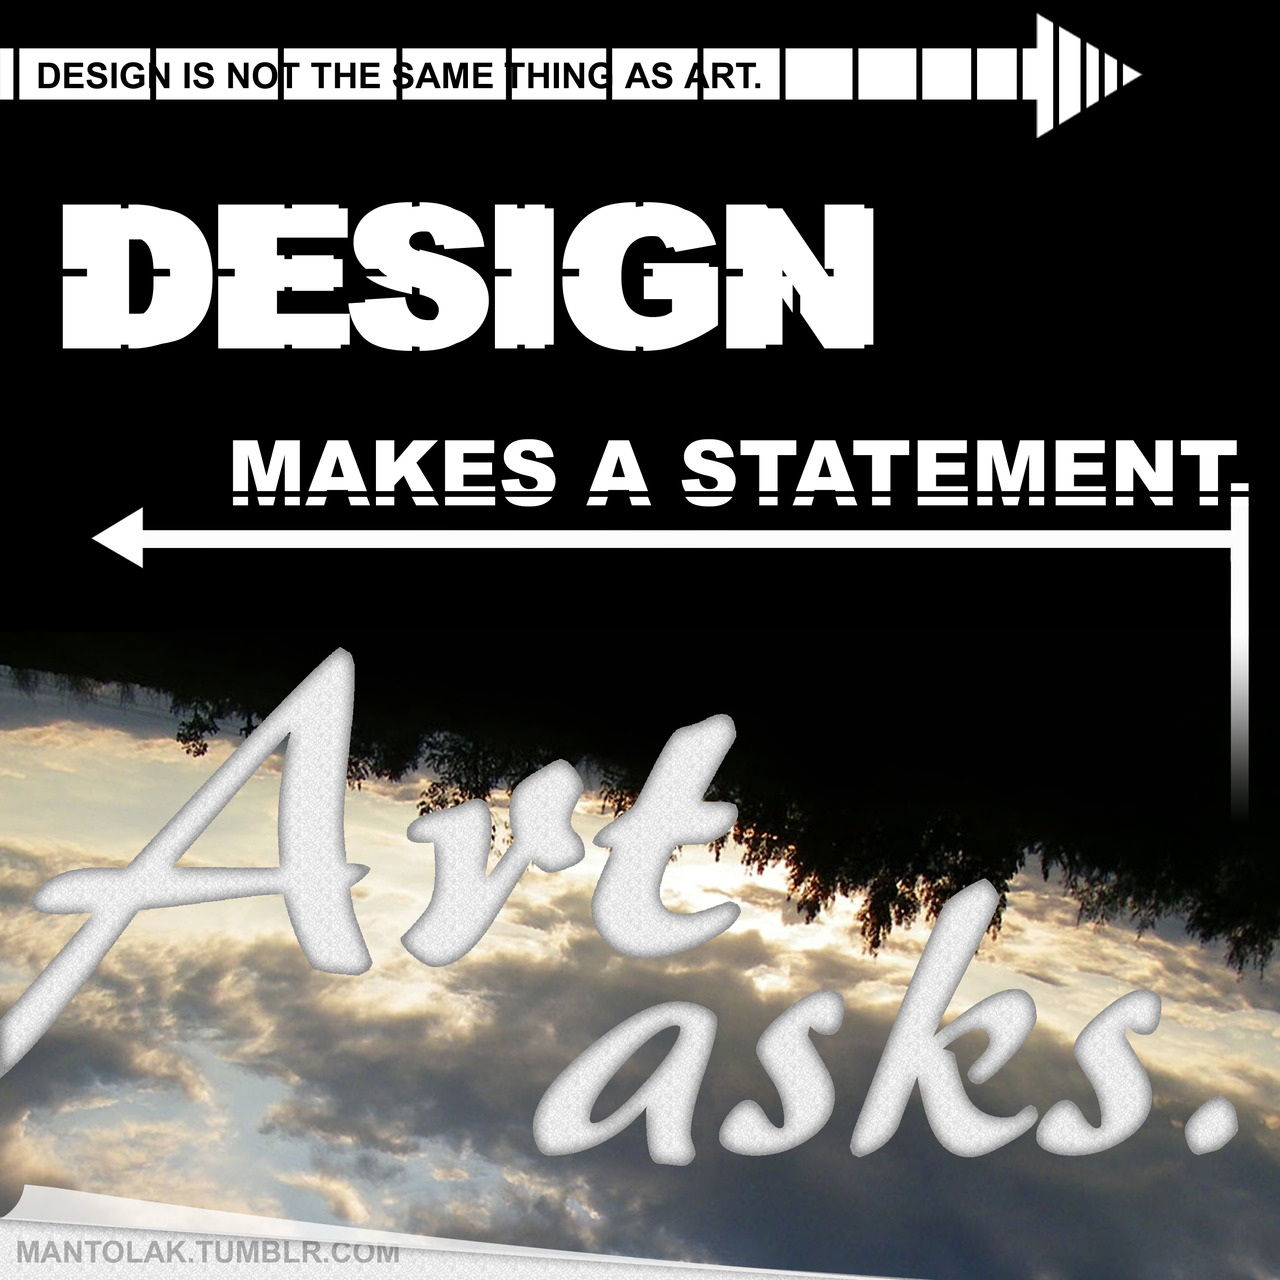 Art v. Design, this one was inspired by a response from the artist, myedol, who gave a beautiful description of the difference between art and design.